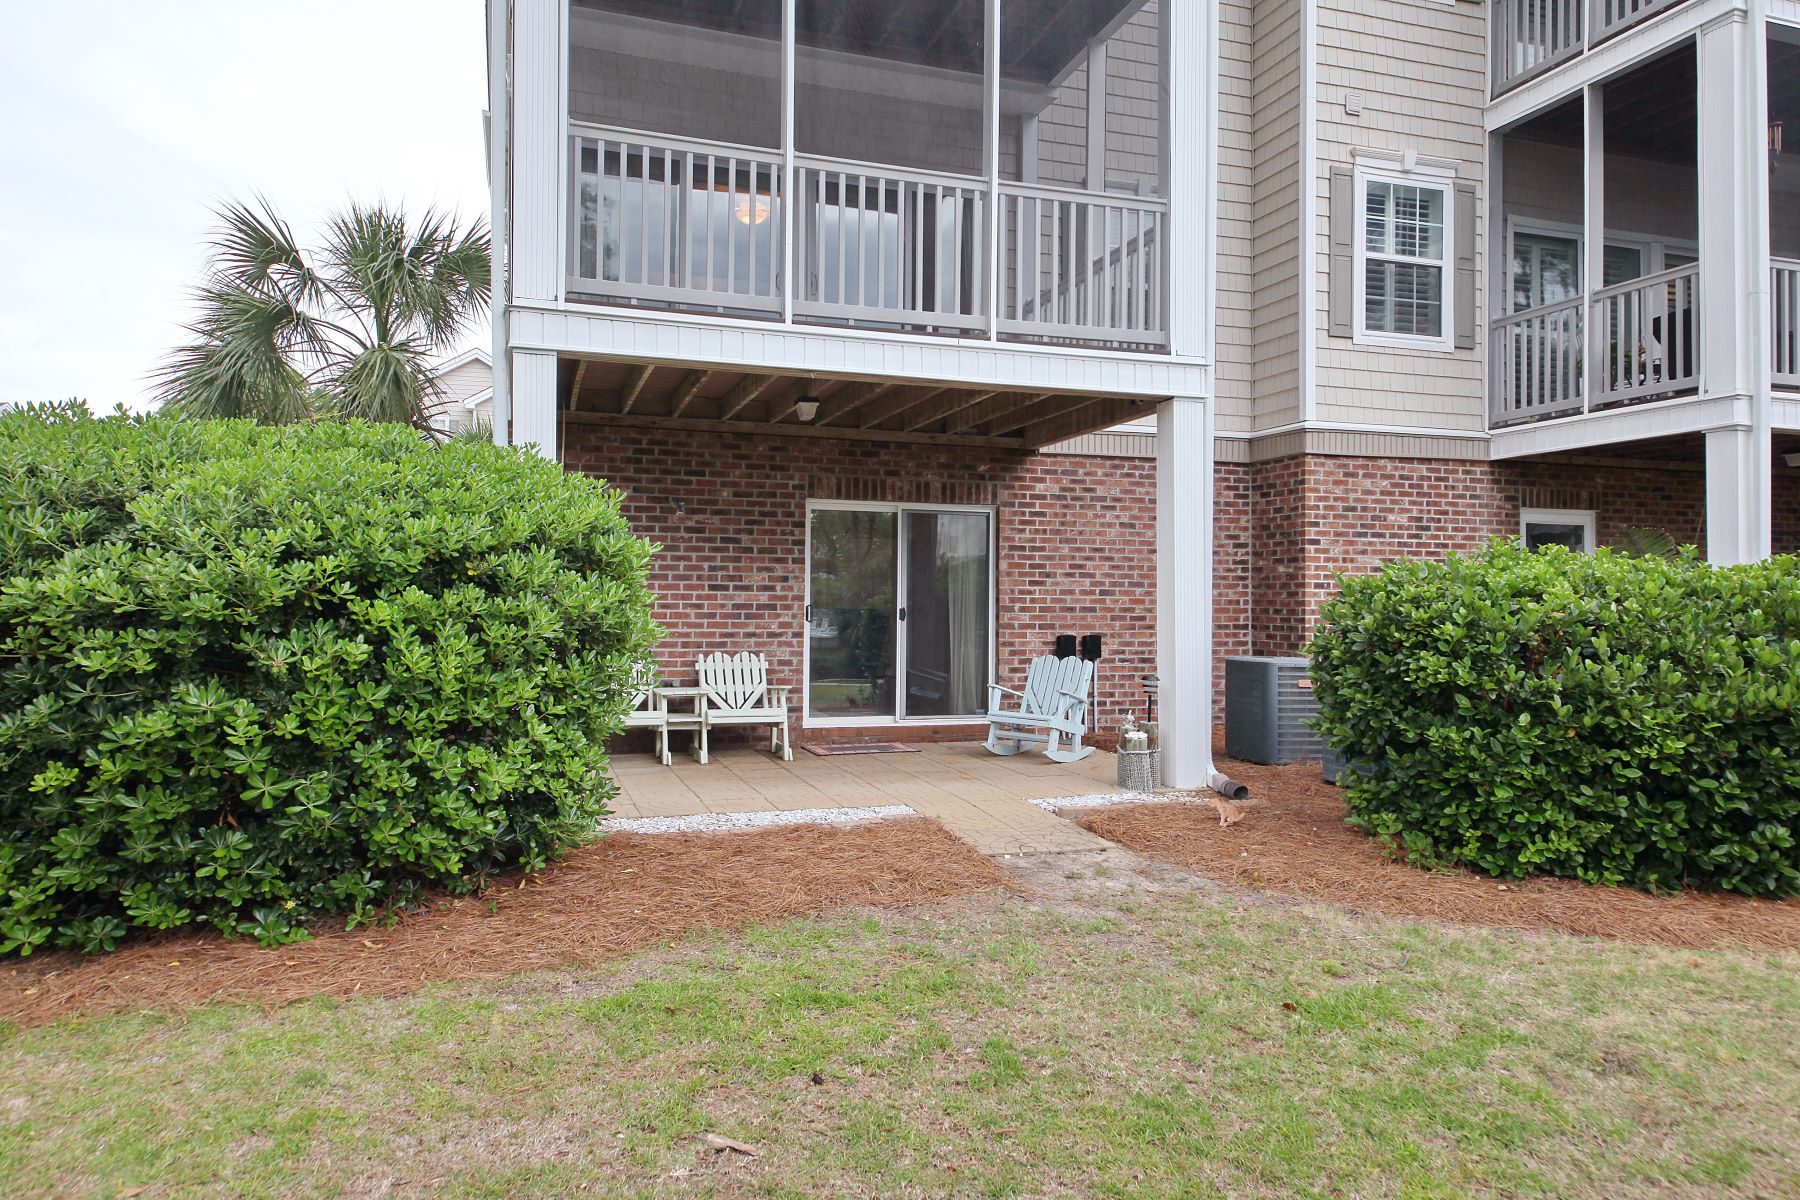 townhouses 용 매매 에 Amenity-Rich Townhome in North Myrtle Beach 601 Hillside Dr N #1106, North Myrtle Beach, 사우스캐놀라이나 29582 미국